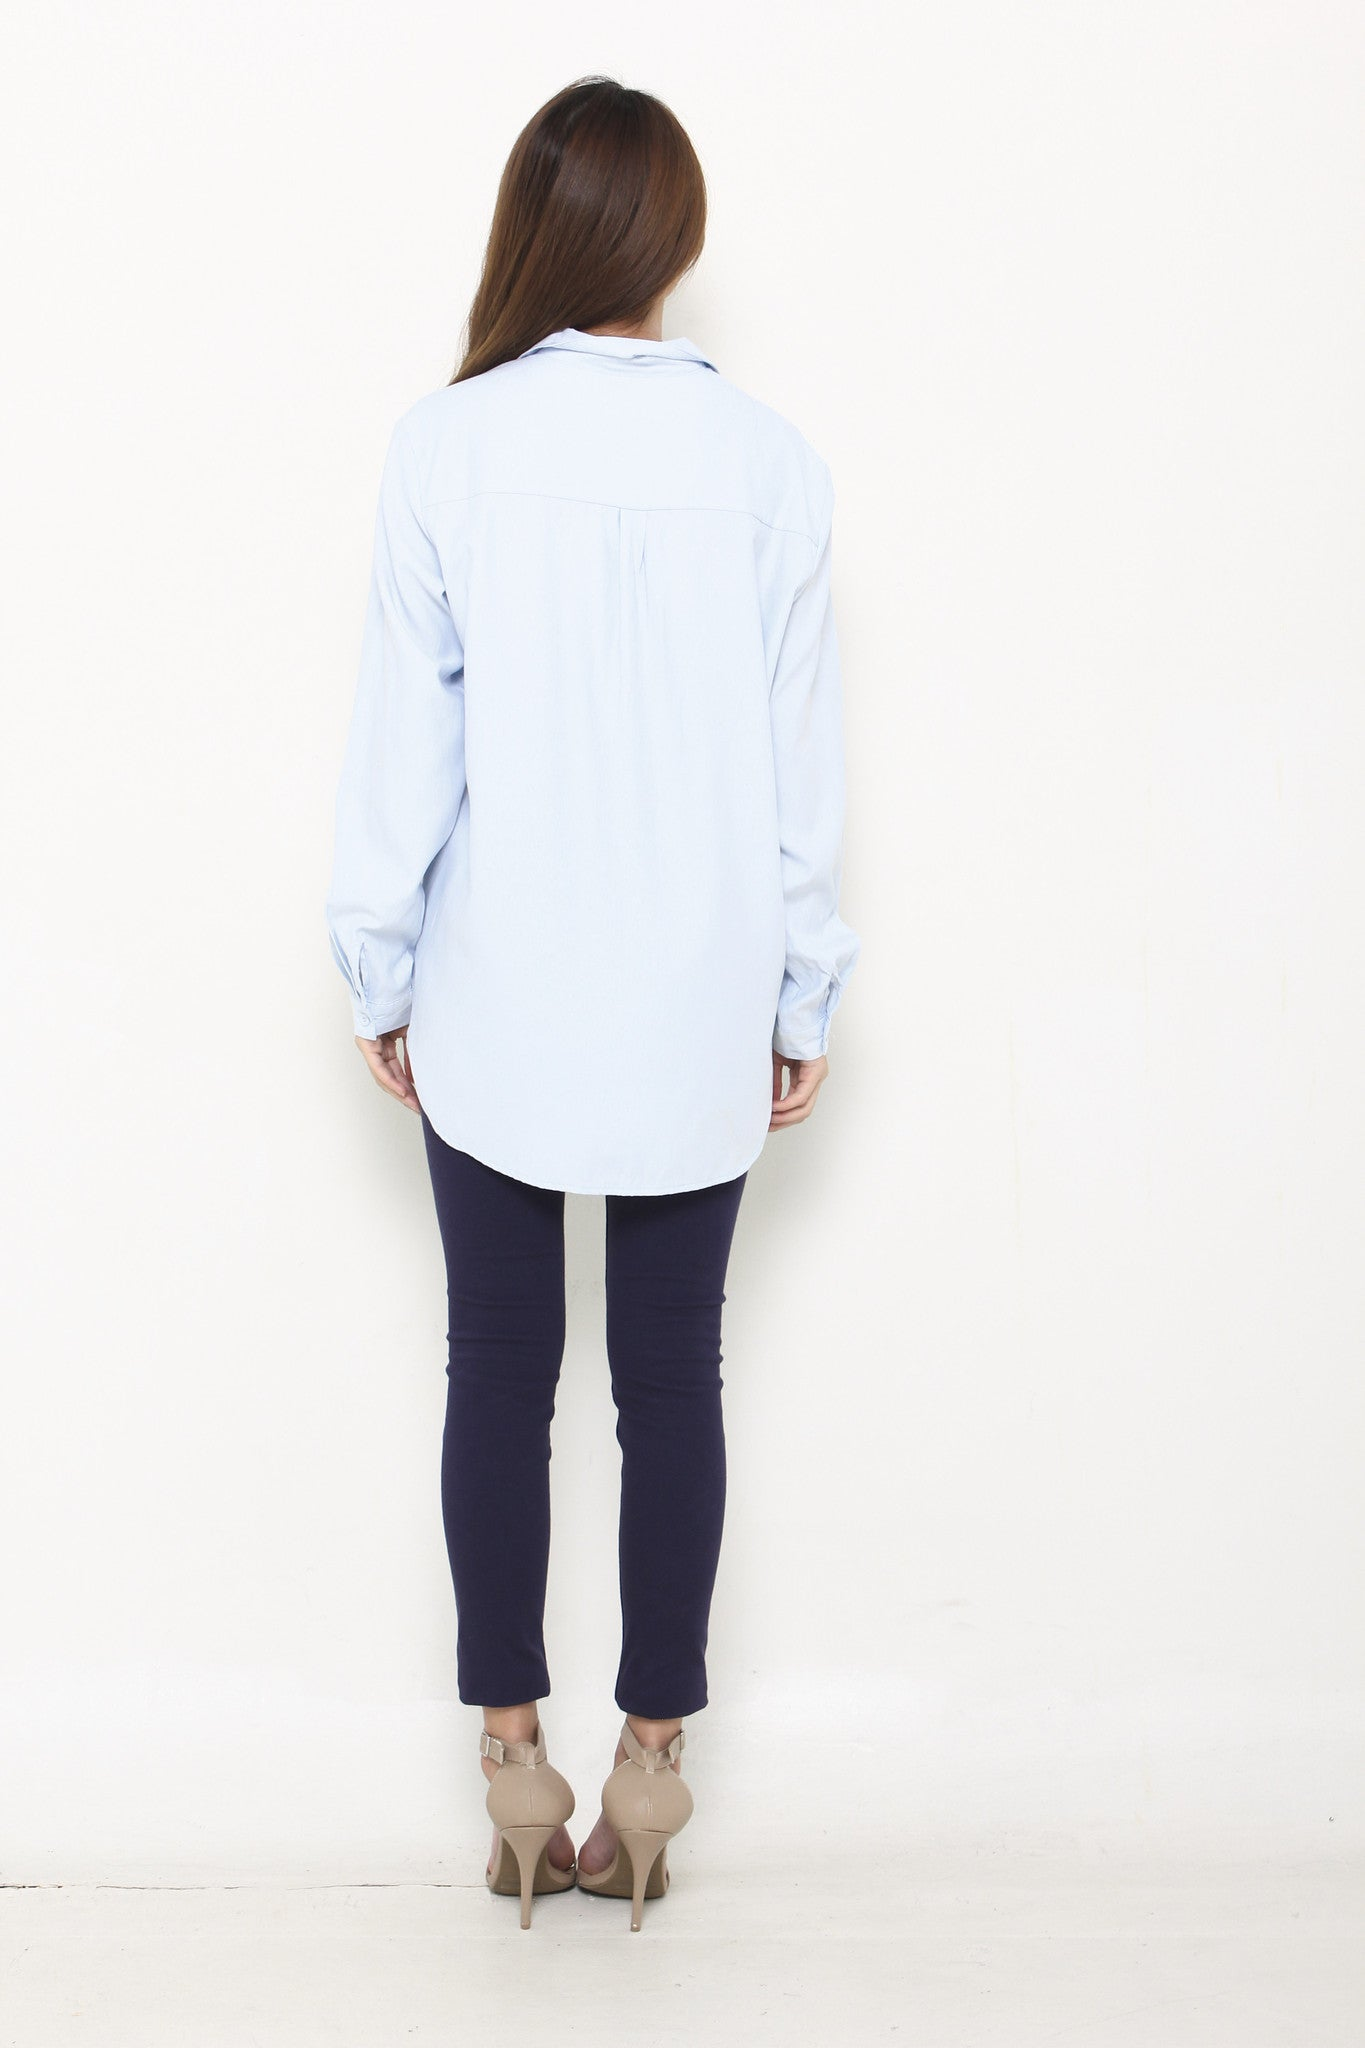 Mindy Plain Shirt in Light Blue